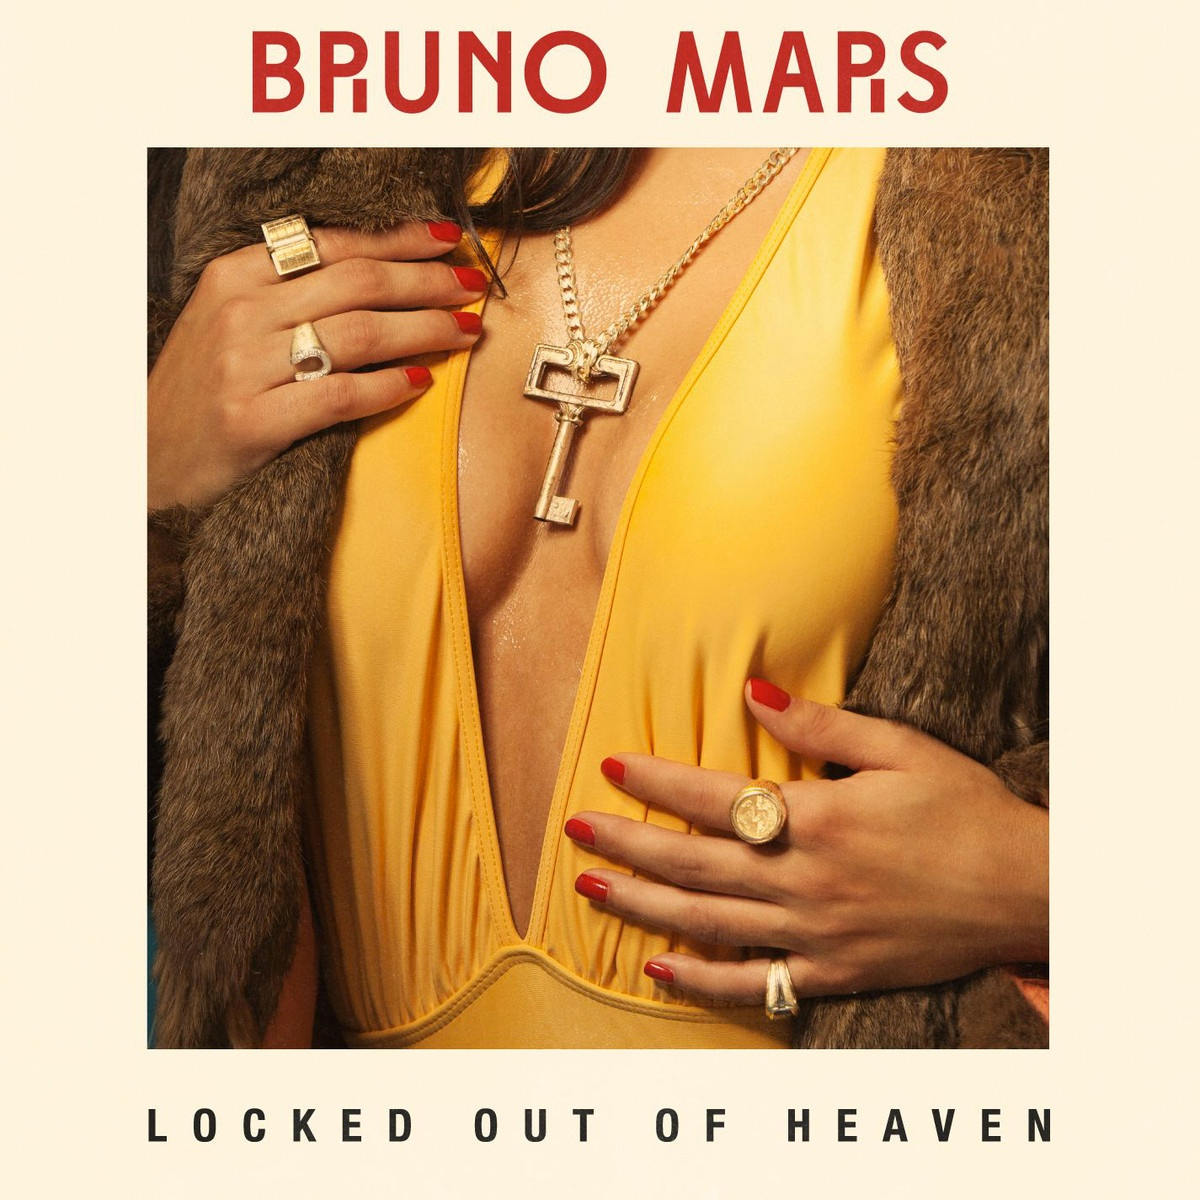 155_Bruno-Mars-Locked-Out-of-Heaven-2012-1200x1200.jpg